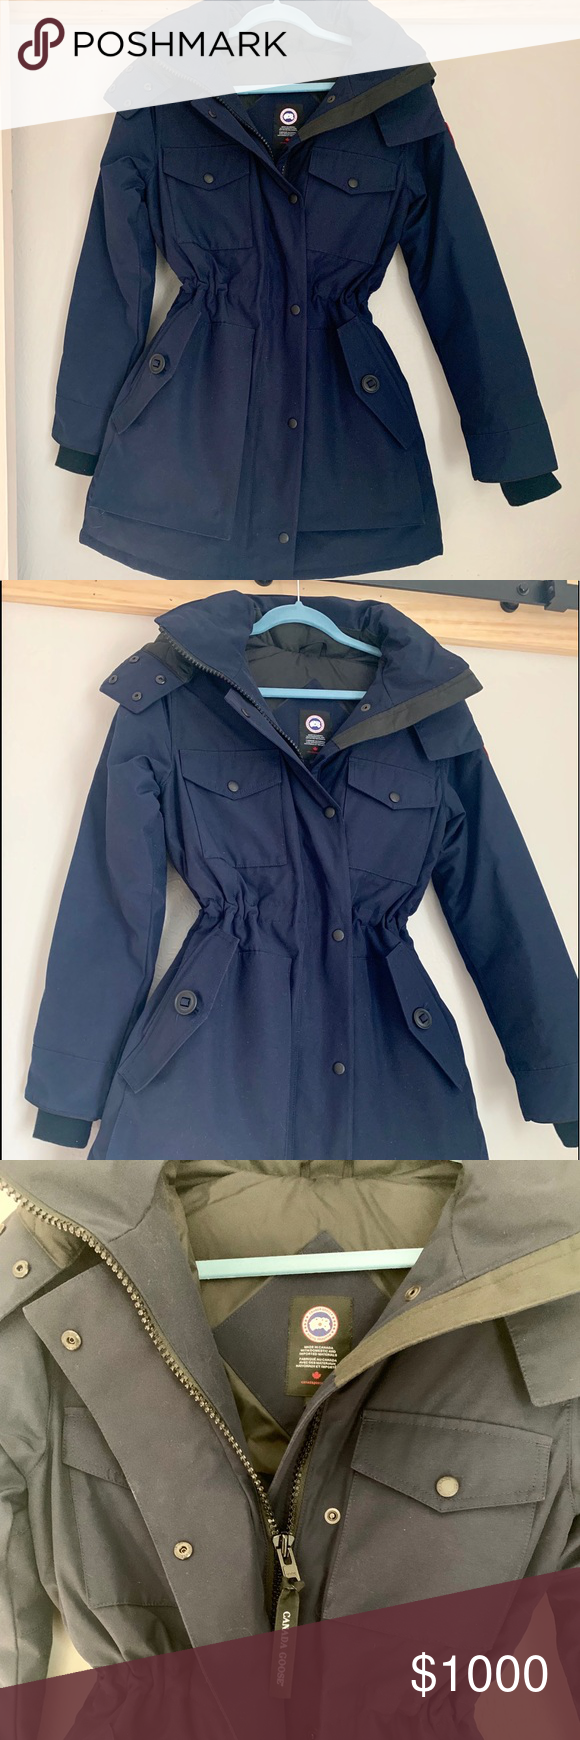 Navy Canada Goose Coat Brand New Nwt One Of The Last Navy Canada Goose Gabriola Hooded Parka Coat In Size Small This Jacket Is Abs Coat Canada Goose Parka Coat